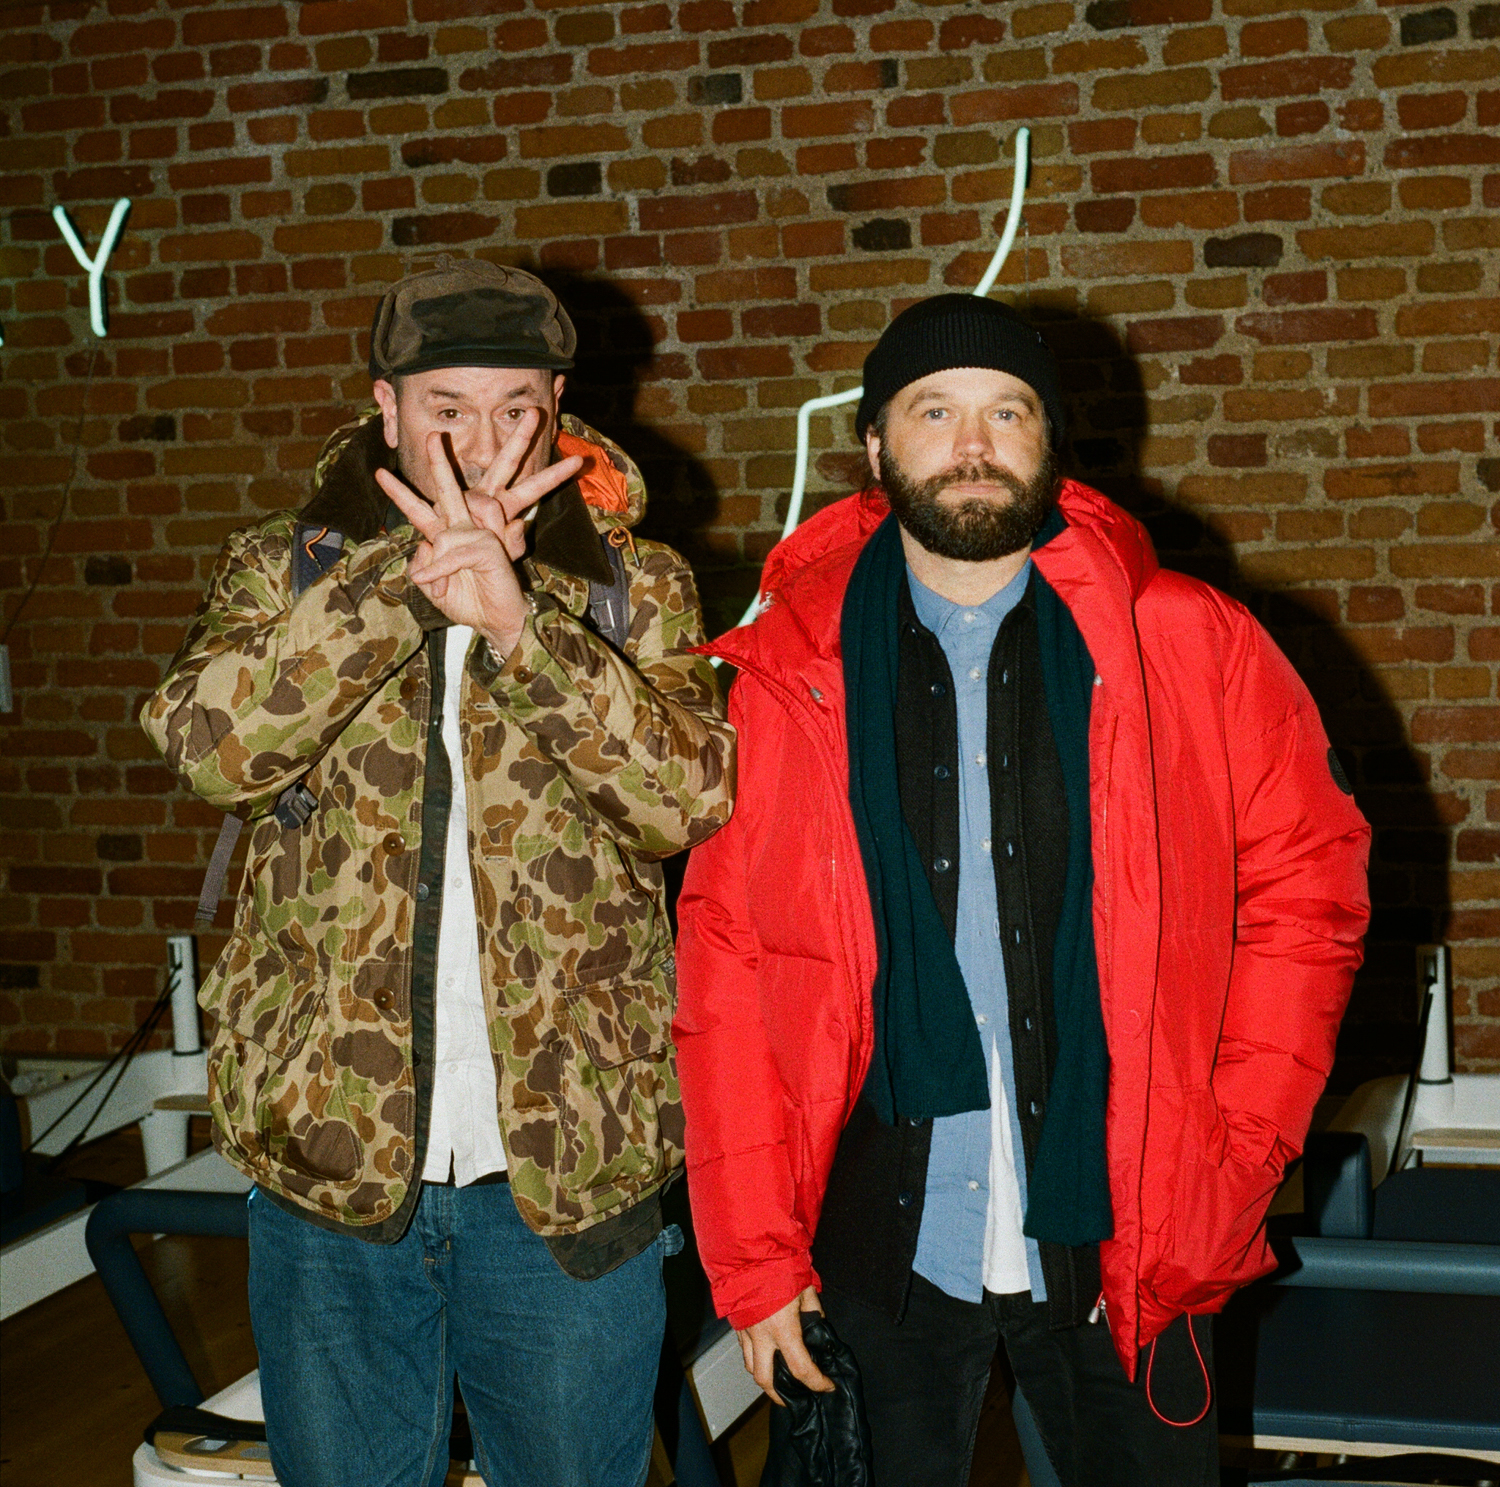 Nostalgic Finnish streetwear label CTRL is back with a bang: with a head-on collision with fellow Finnish fashion powerhouse Makia. - We sat down with the two creatives behind each brand: Freeman from CTRL (left) and Jesse from Makia (right) for an exclusive look at their upcoming collection and so much more.